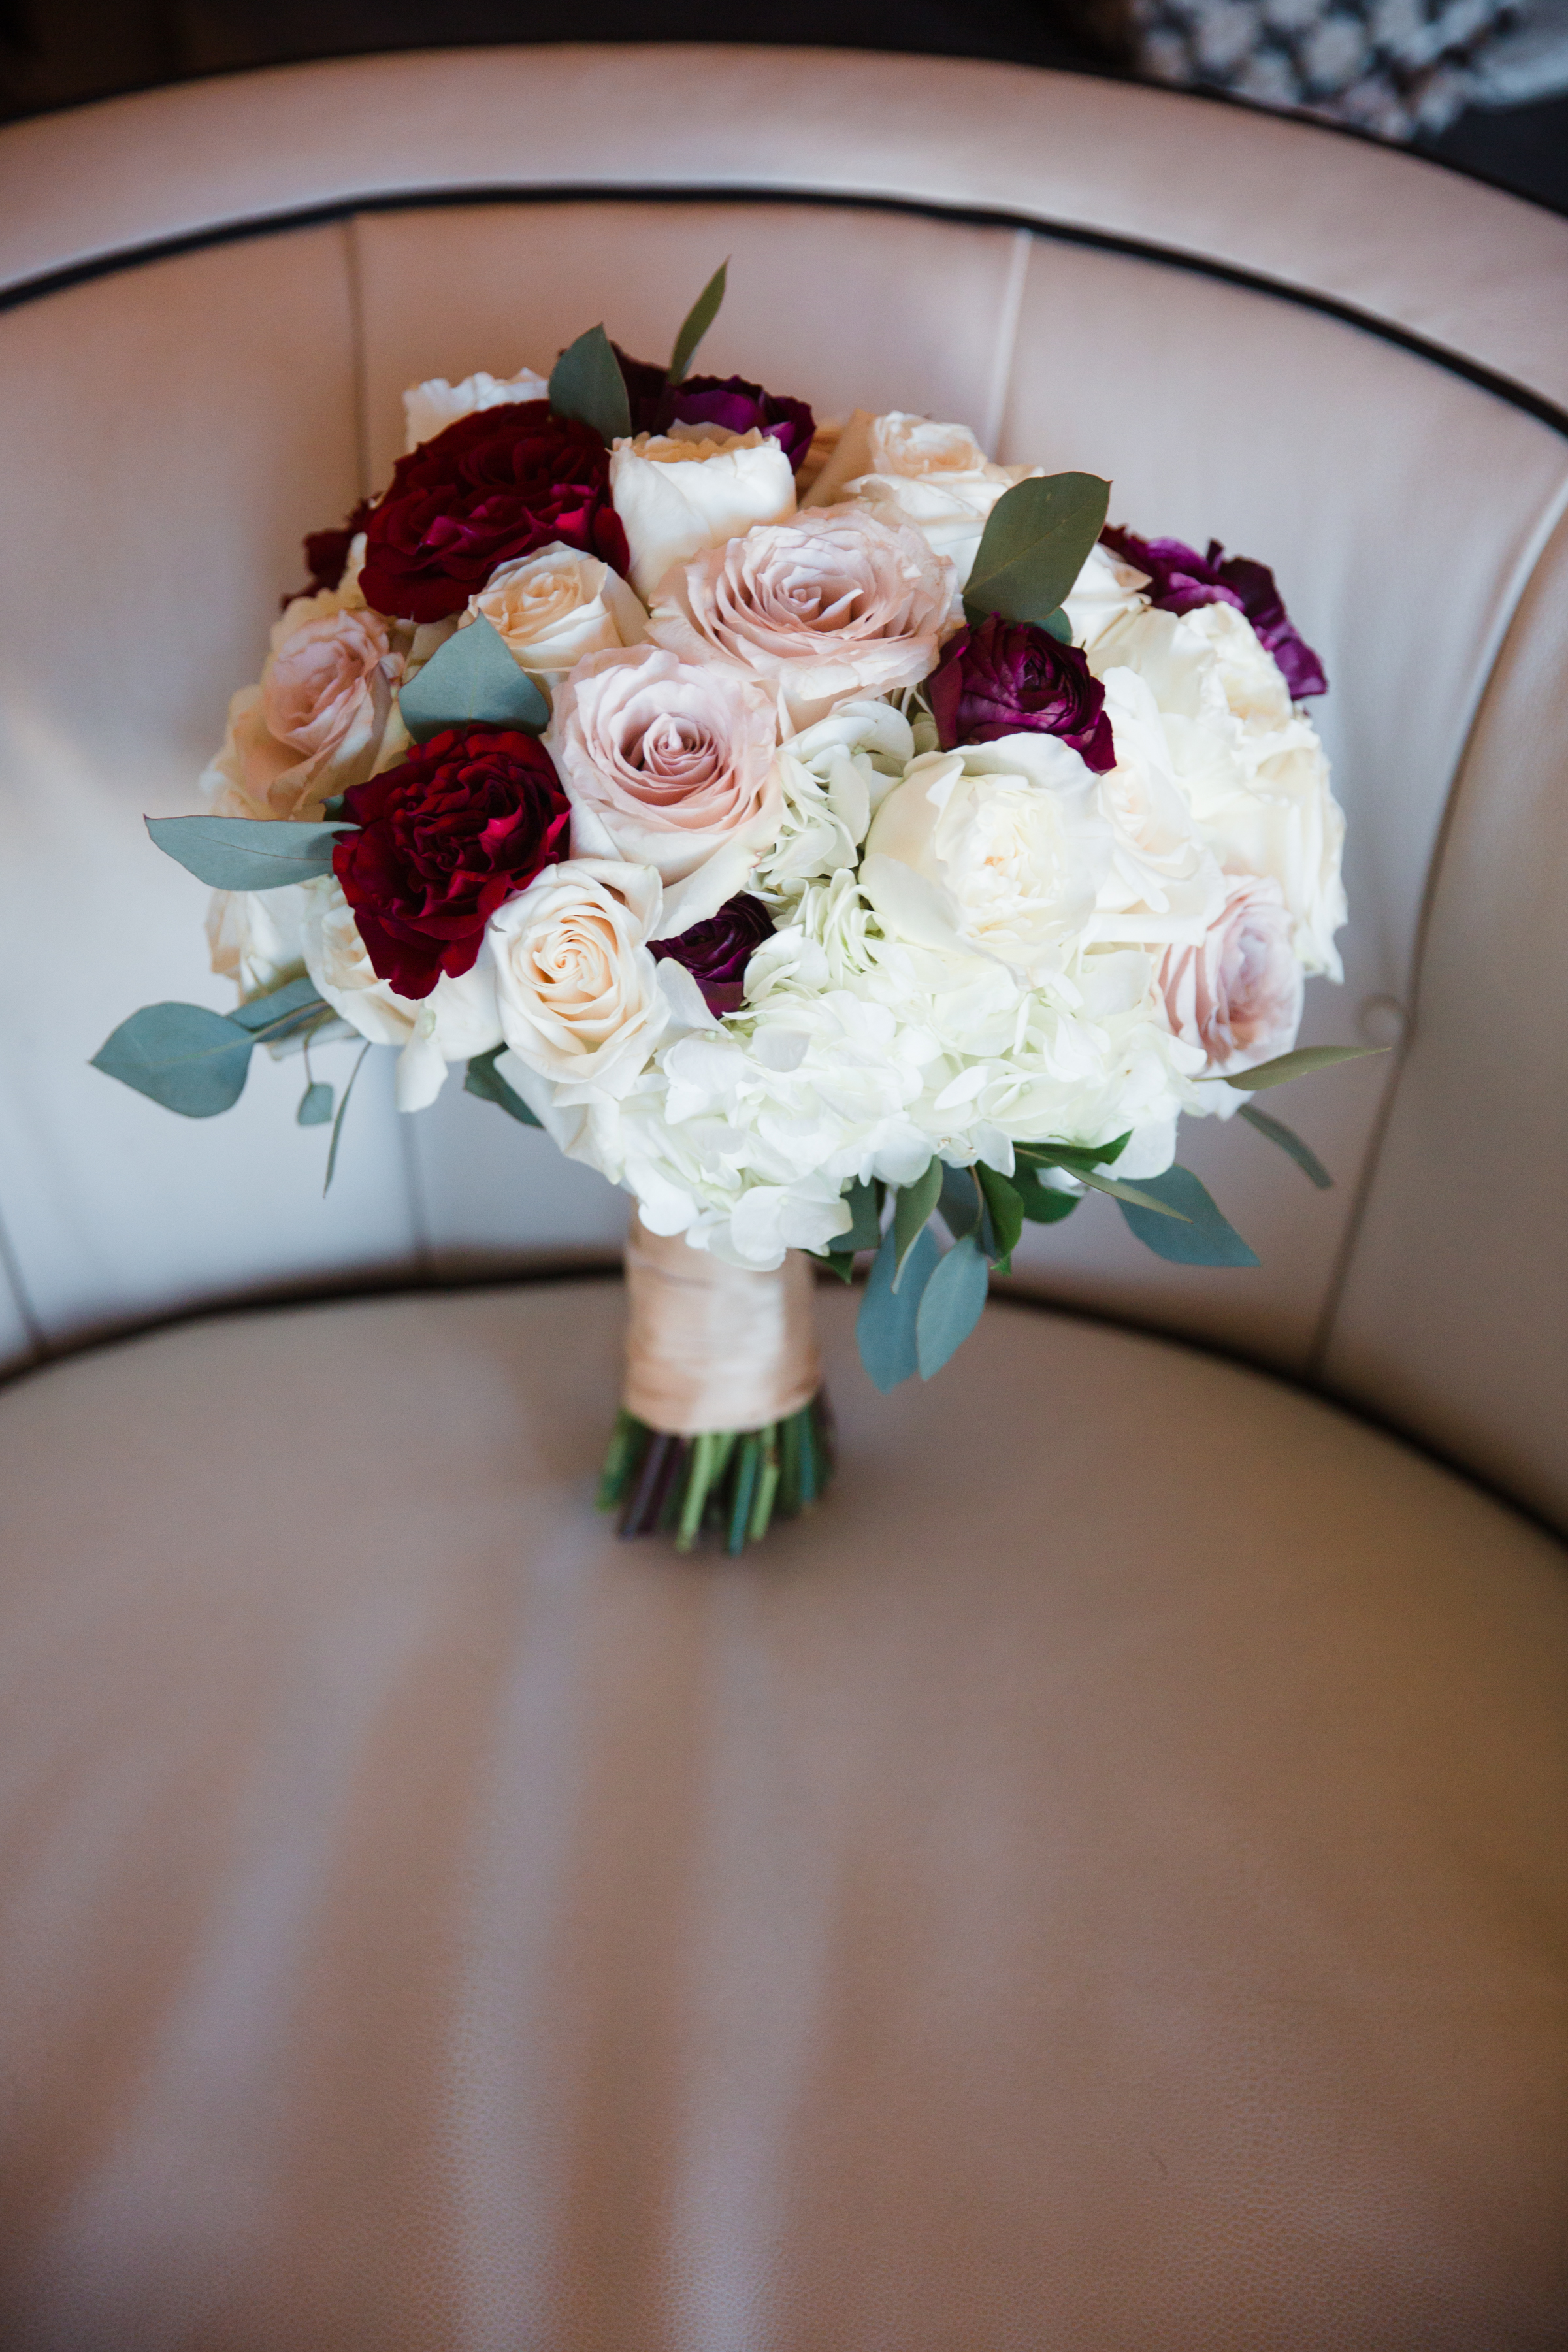 Deep Red and Blush Wedding Bouquet.Luxury wedding at the Mandarin Oriental with a color scheme of white, blush, and pops of wine red produced by Las Vegas Wedding Planner Andrea Eppolito with photos by Stephen Salazar Photography.